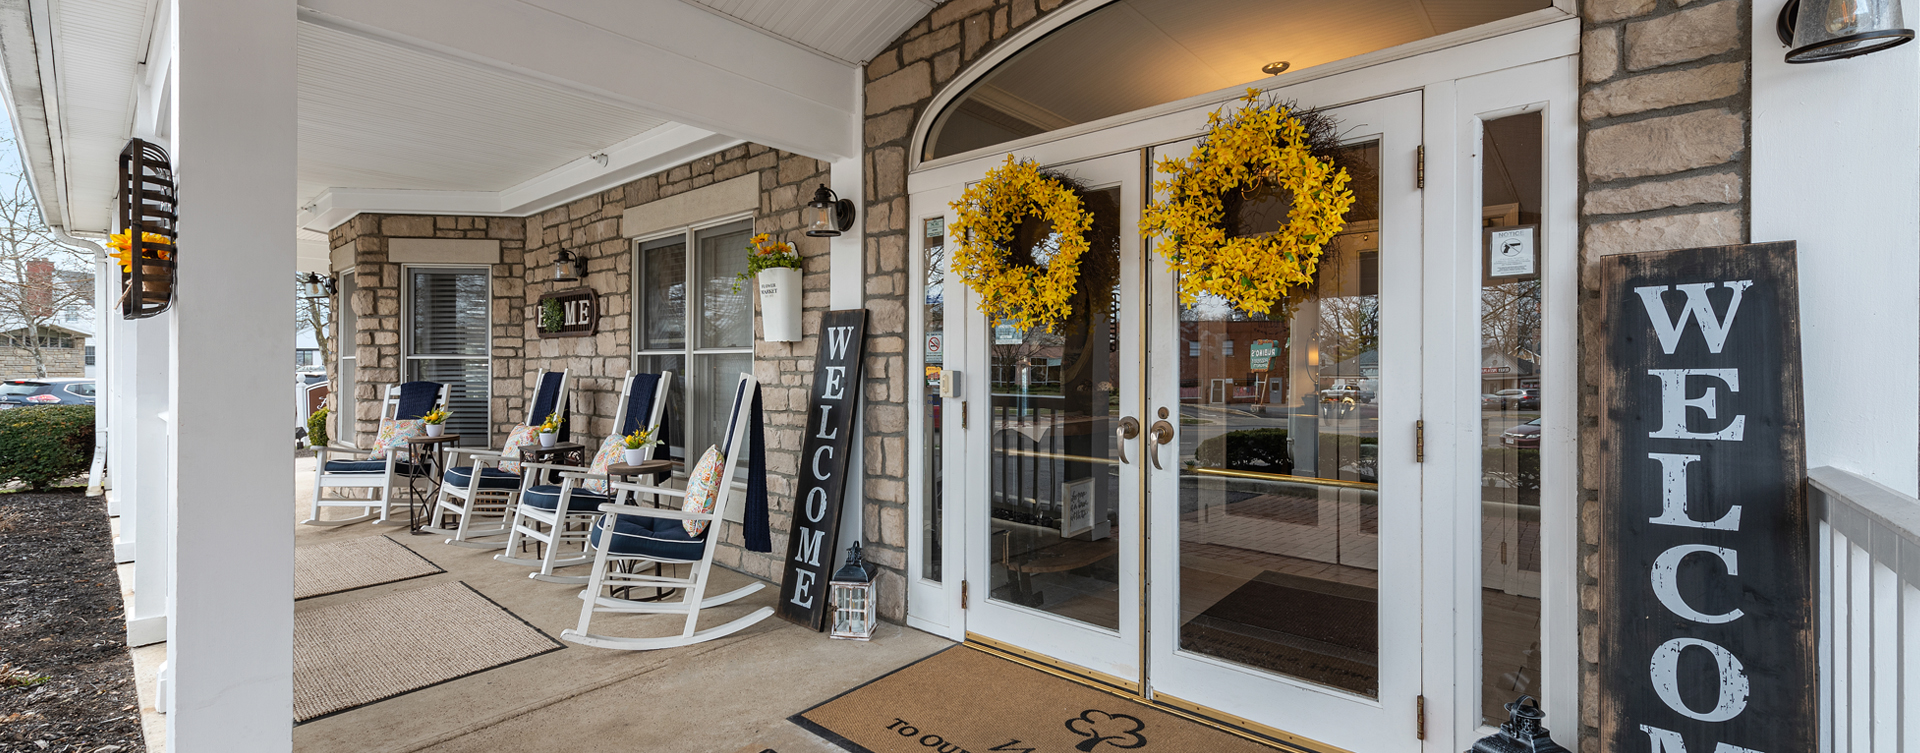 Sip on your favorite drink on the porch at Bickford of Bexley